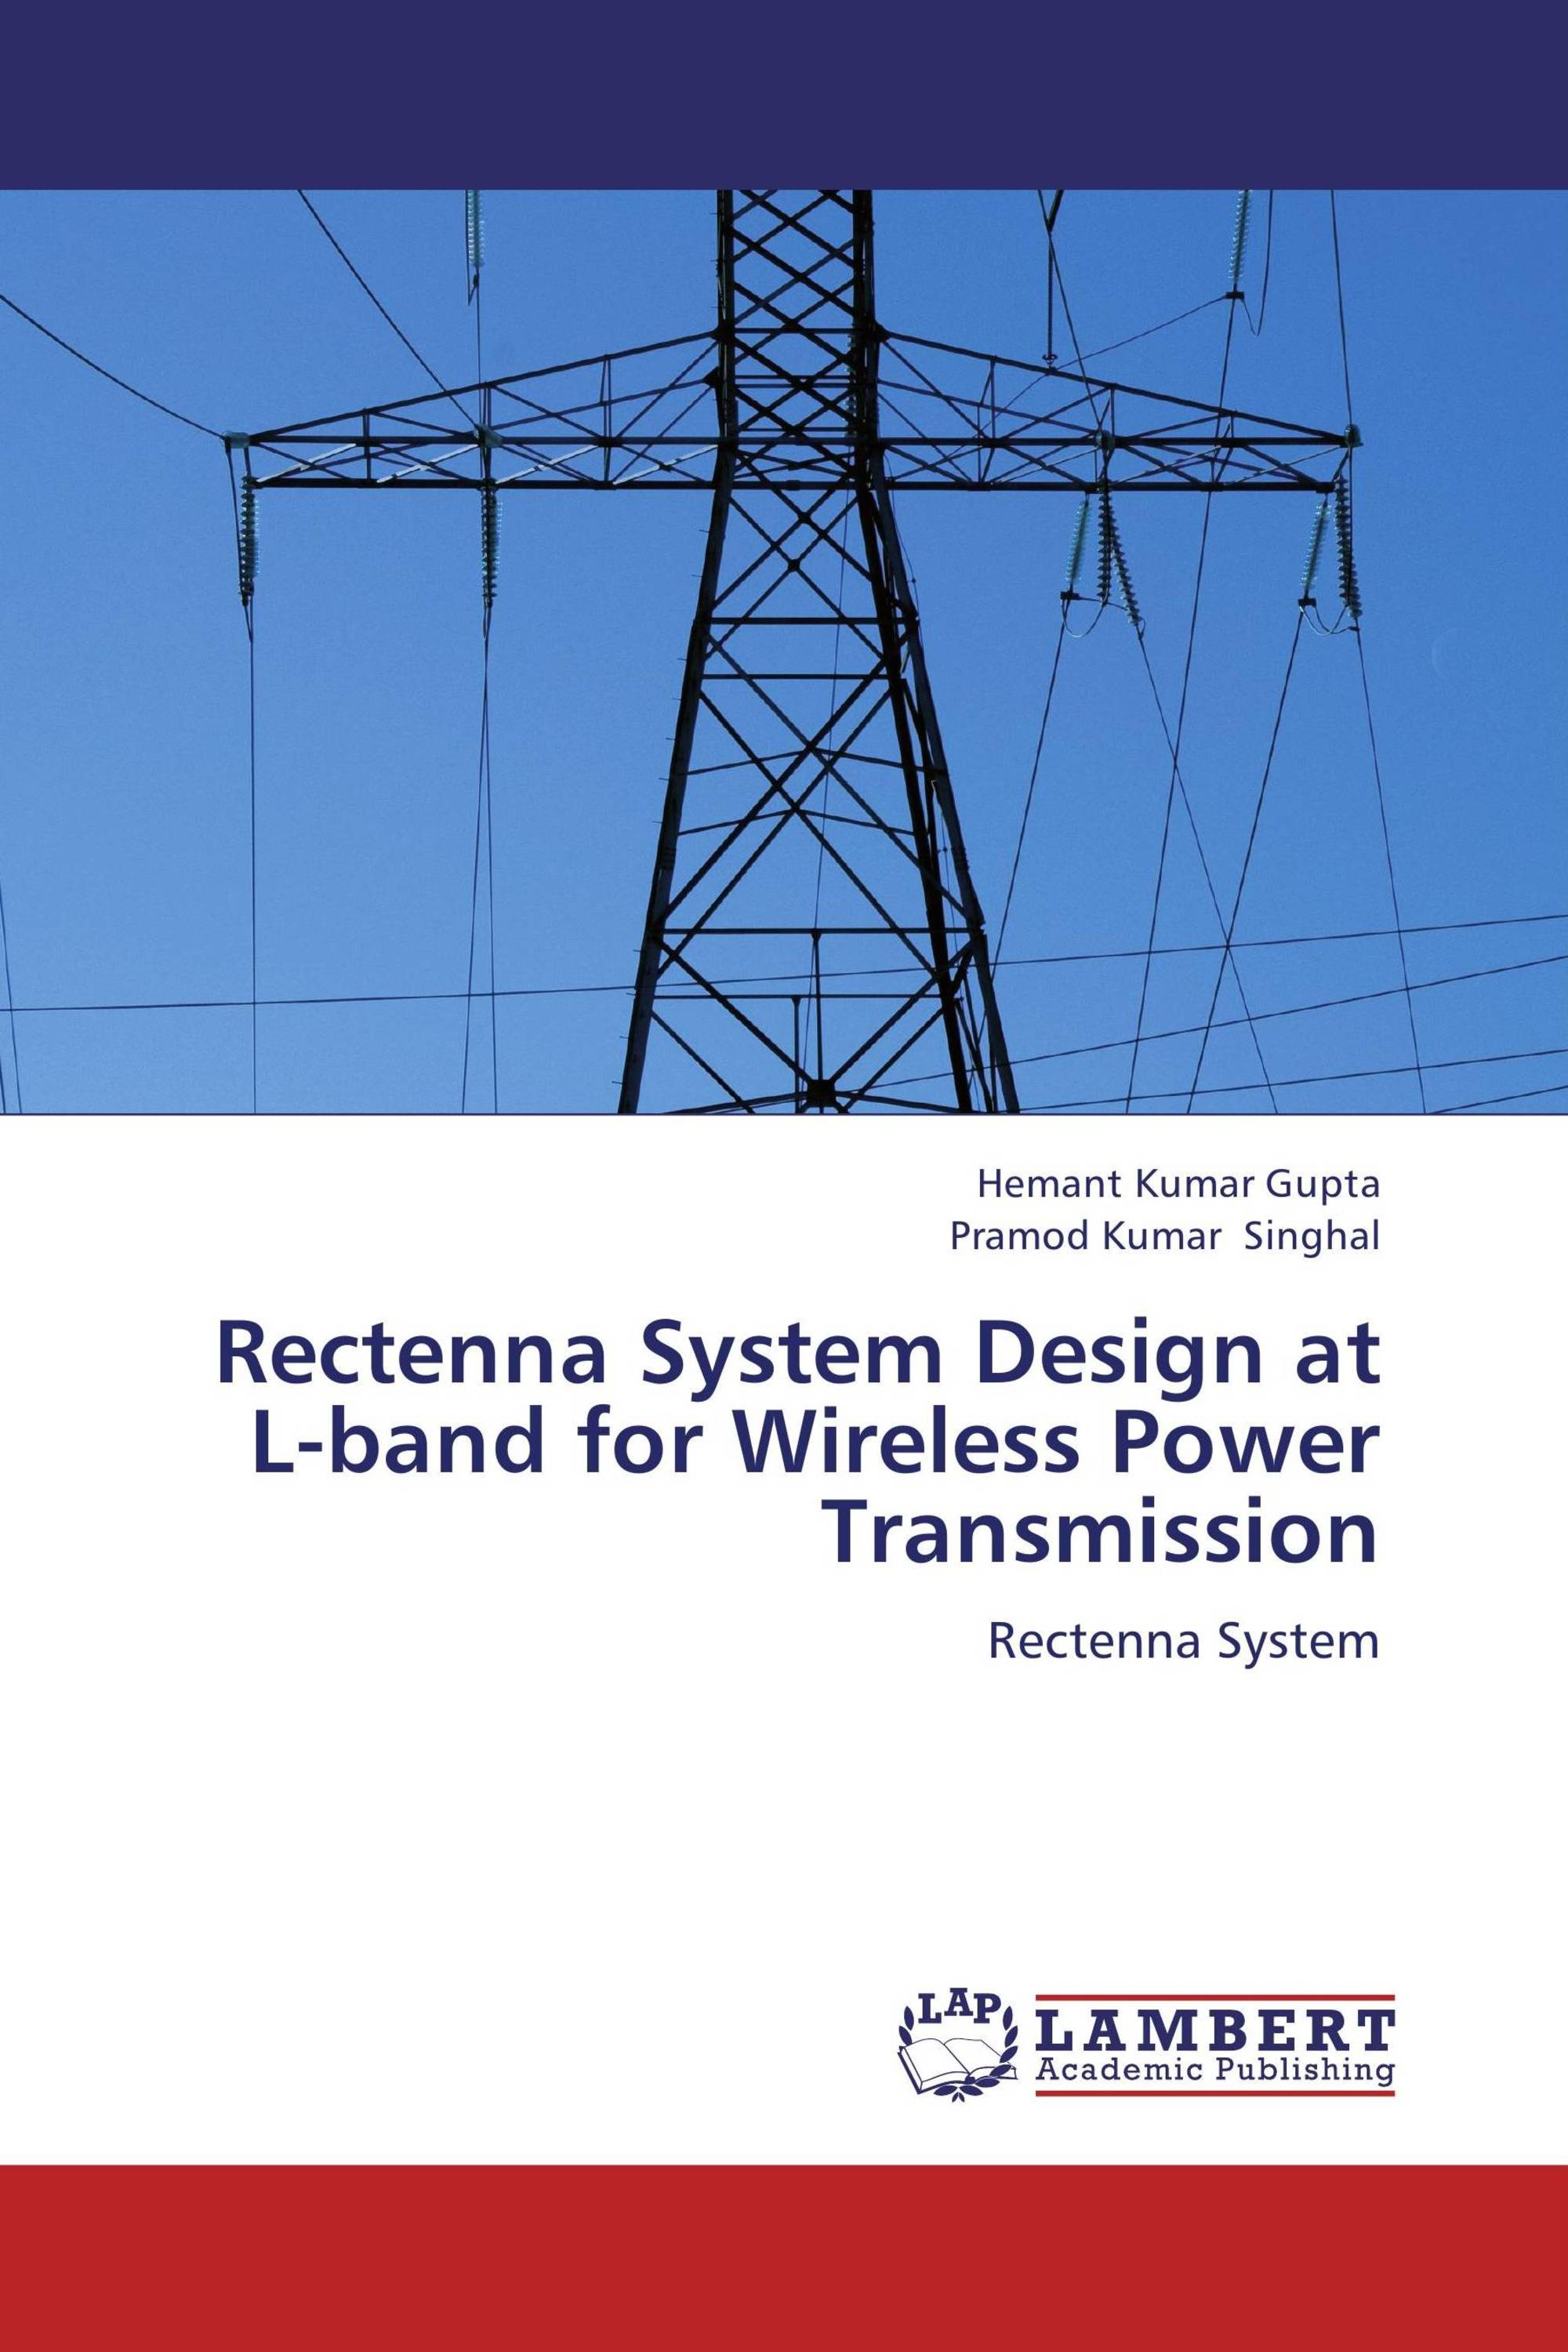 Rectenna System Design at L-band for Wireless Power